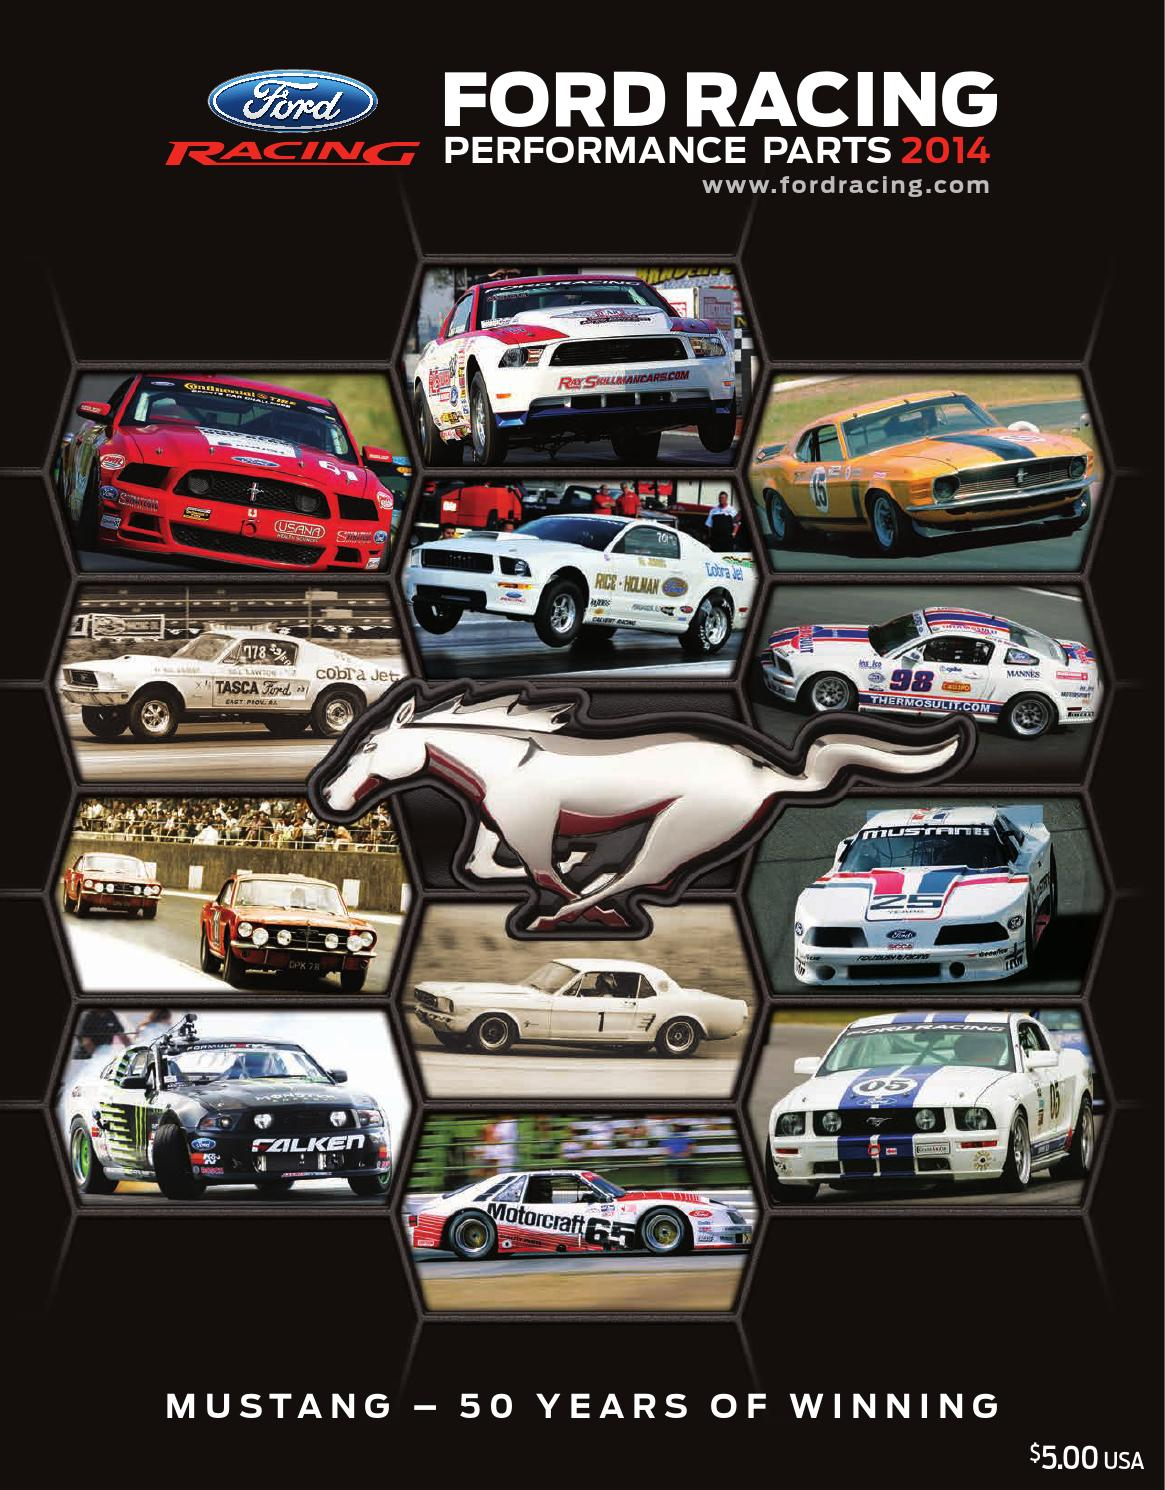 2014 Frpp Catalog By Tmeyer Inc Issuu How To Rewire Your Sn95 Mustang Coupe Fog Light Circuit Work